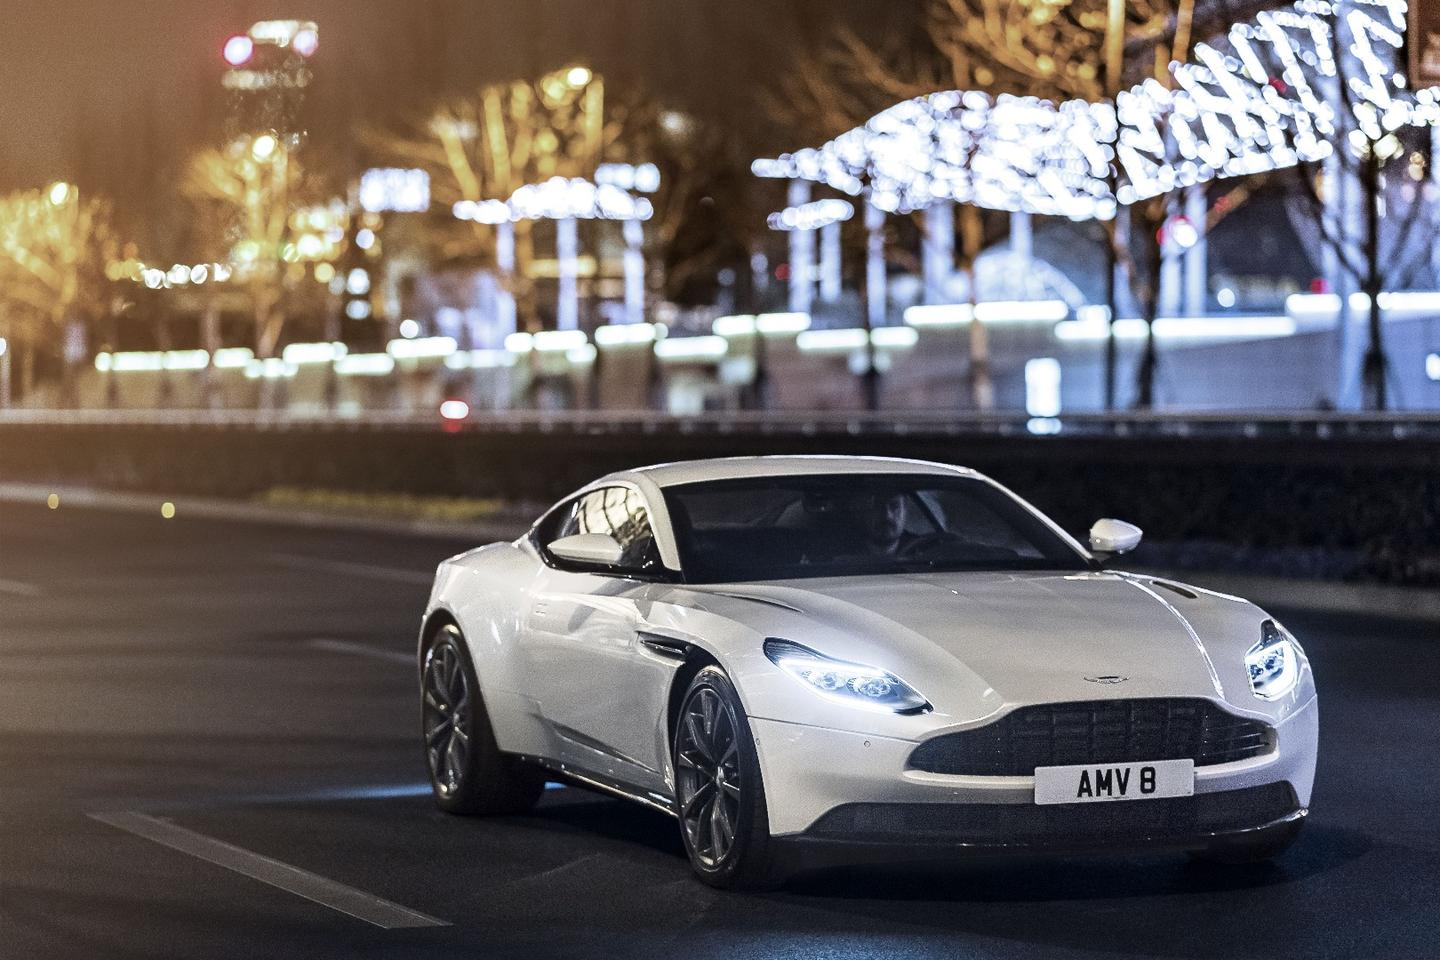 The new V8 DB11 still looks like an Aston Martin